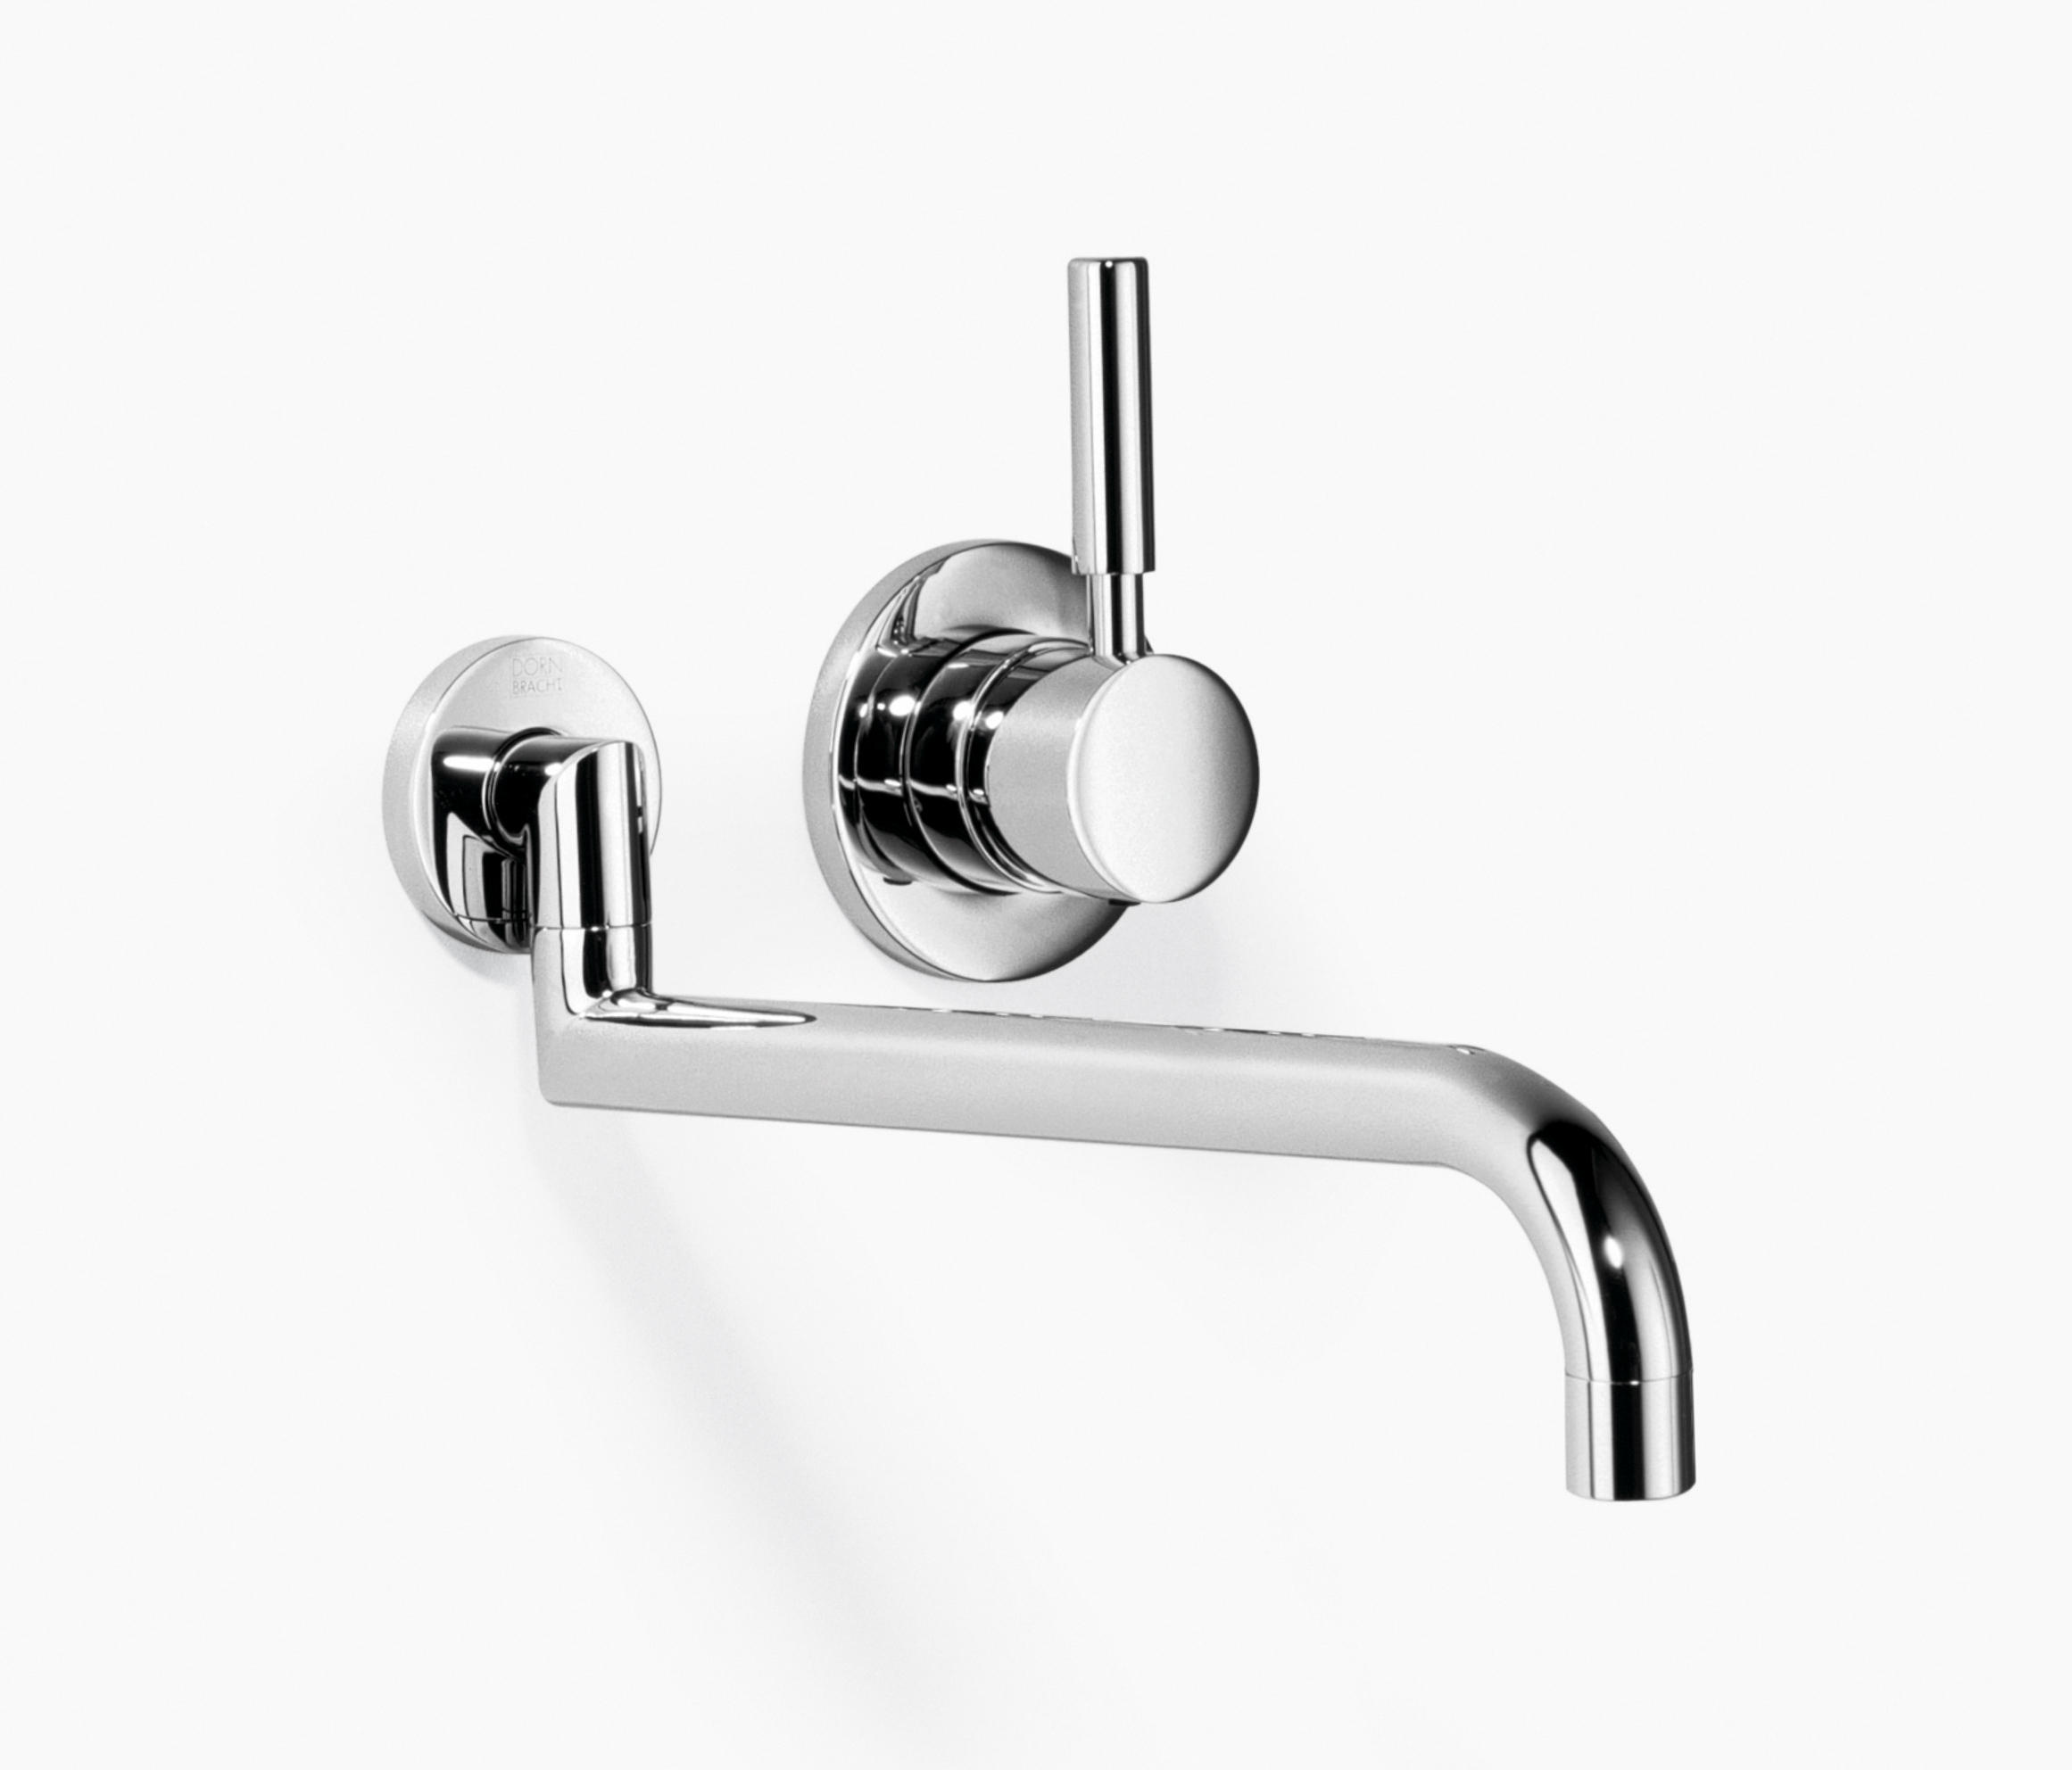 wall mounted mixer kitchen taps from dornbracht architonic. Black Bedroom Furniture Sets. Home Design Ideas